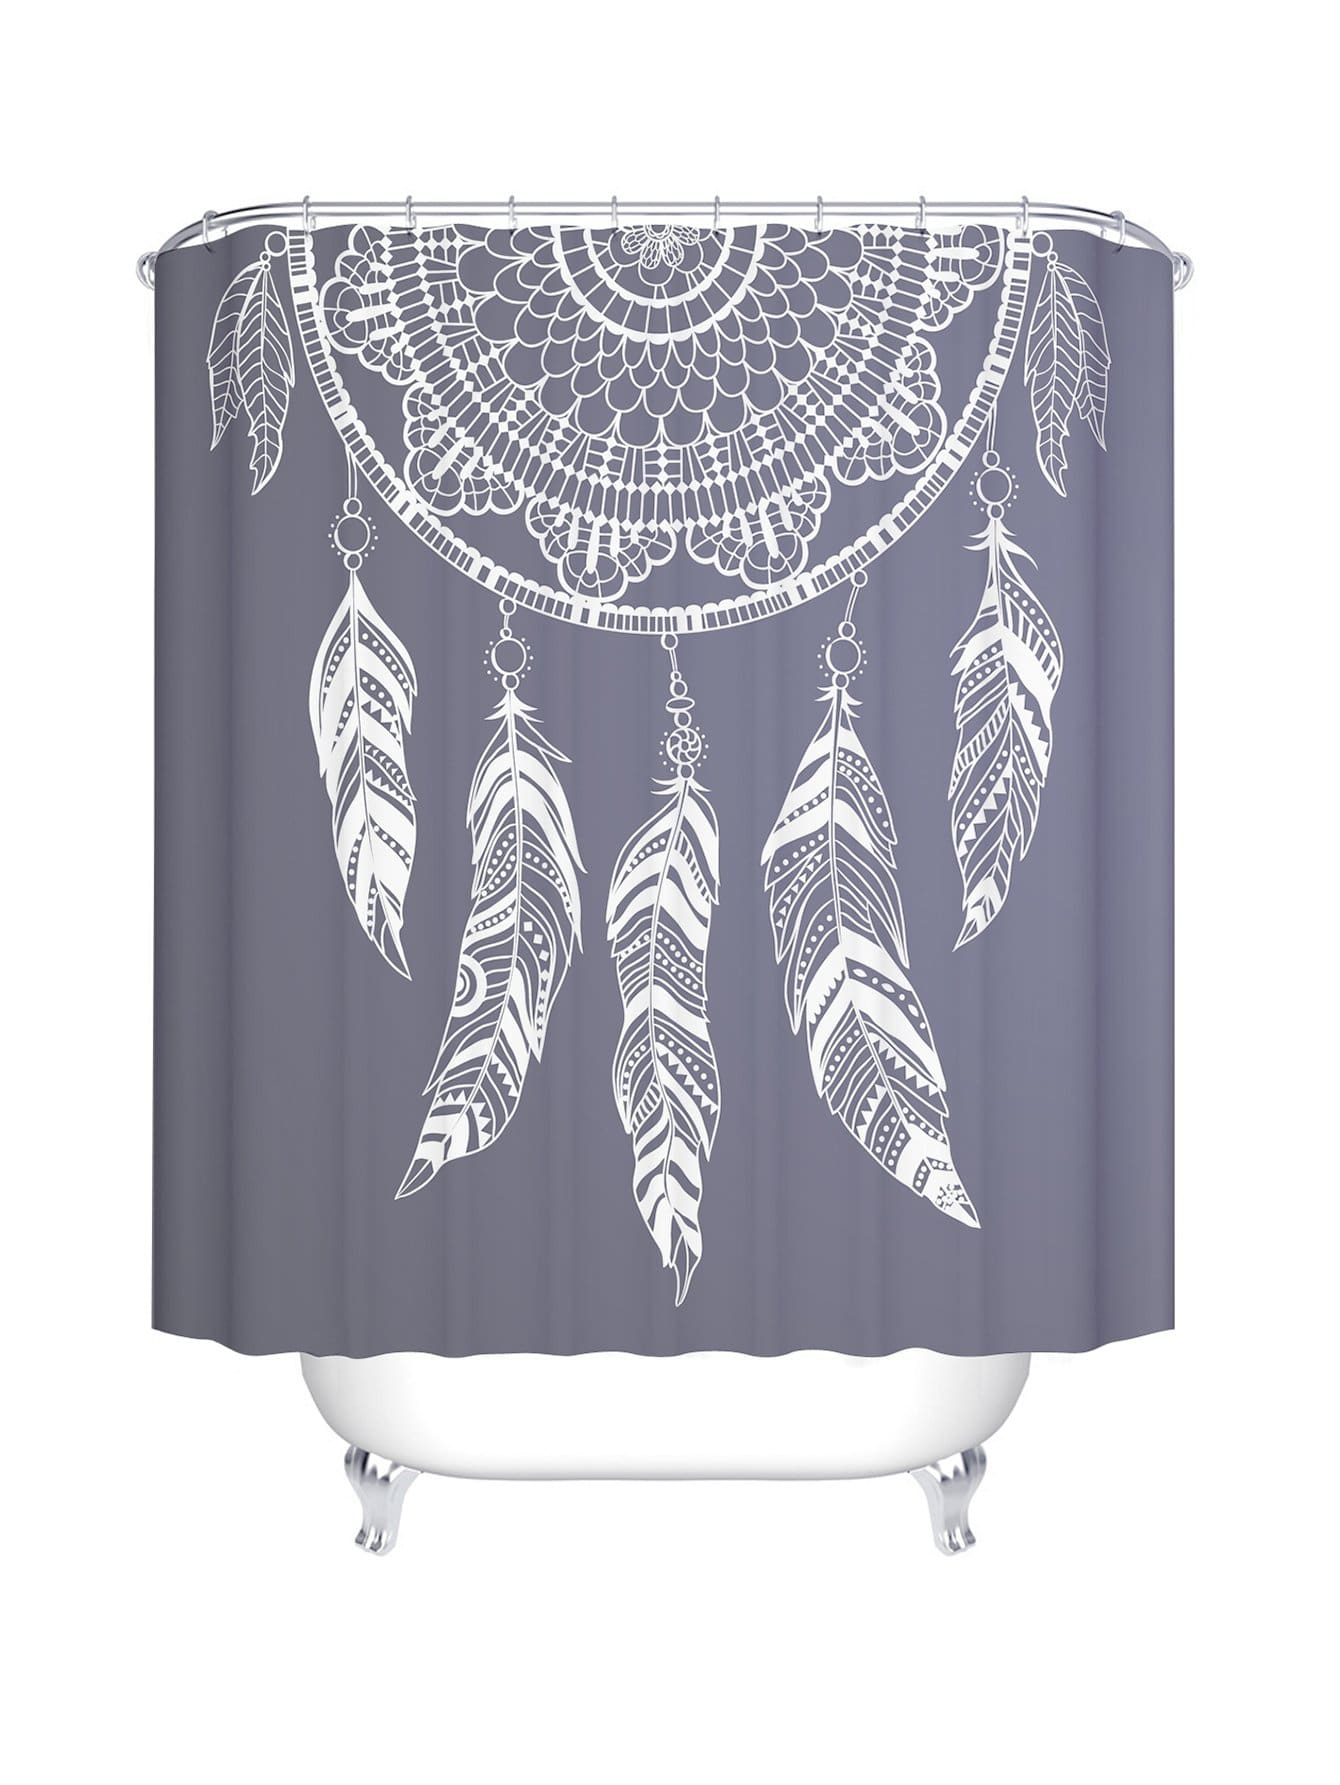 Cute Girly Shower Curtains Dreamcatcher Print Shower Curtain With 12pcs Hook